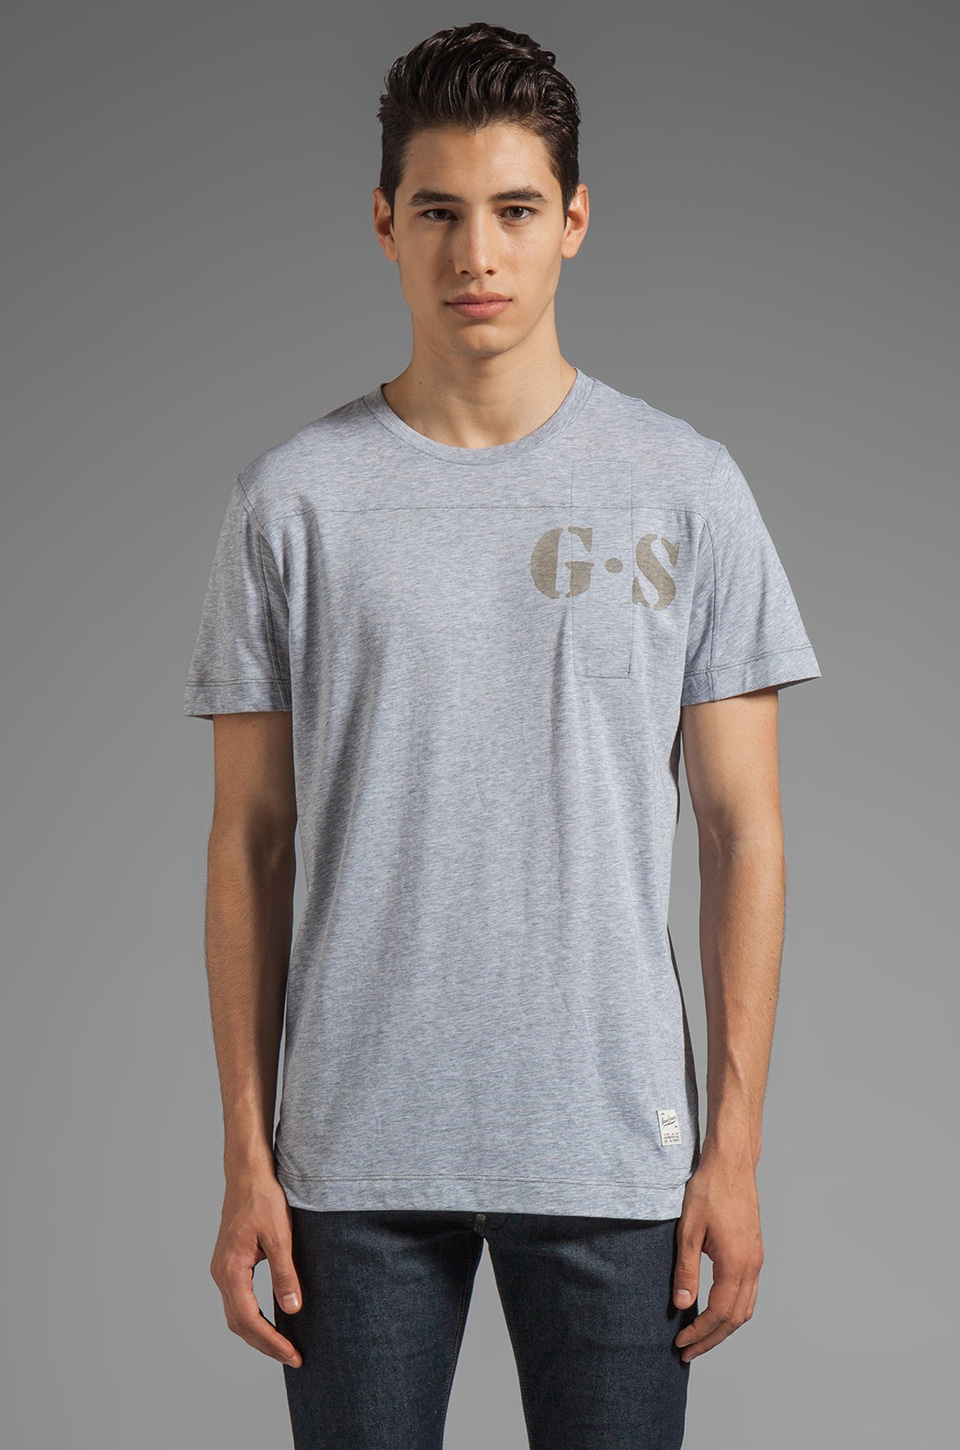 G-Star Apache Short Sleeve Tee in Grey Heather